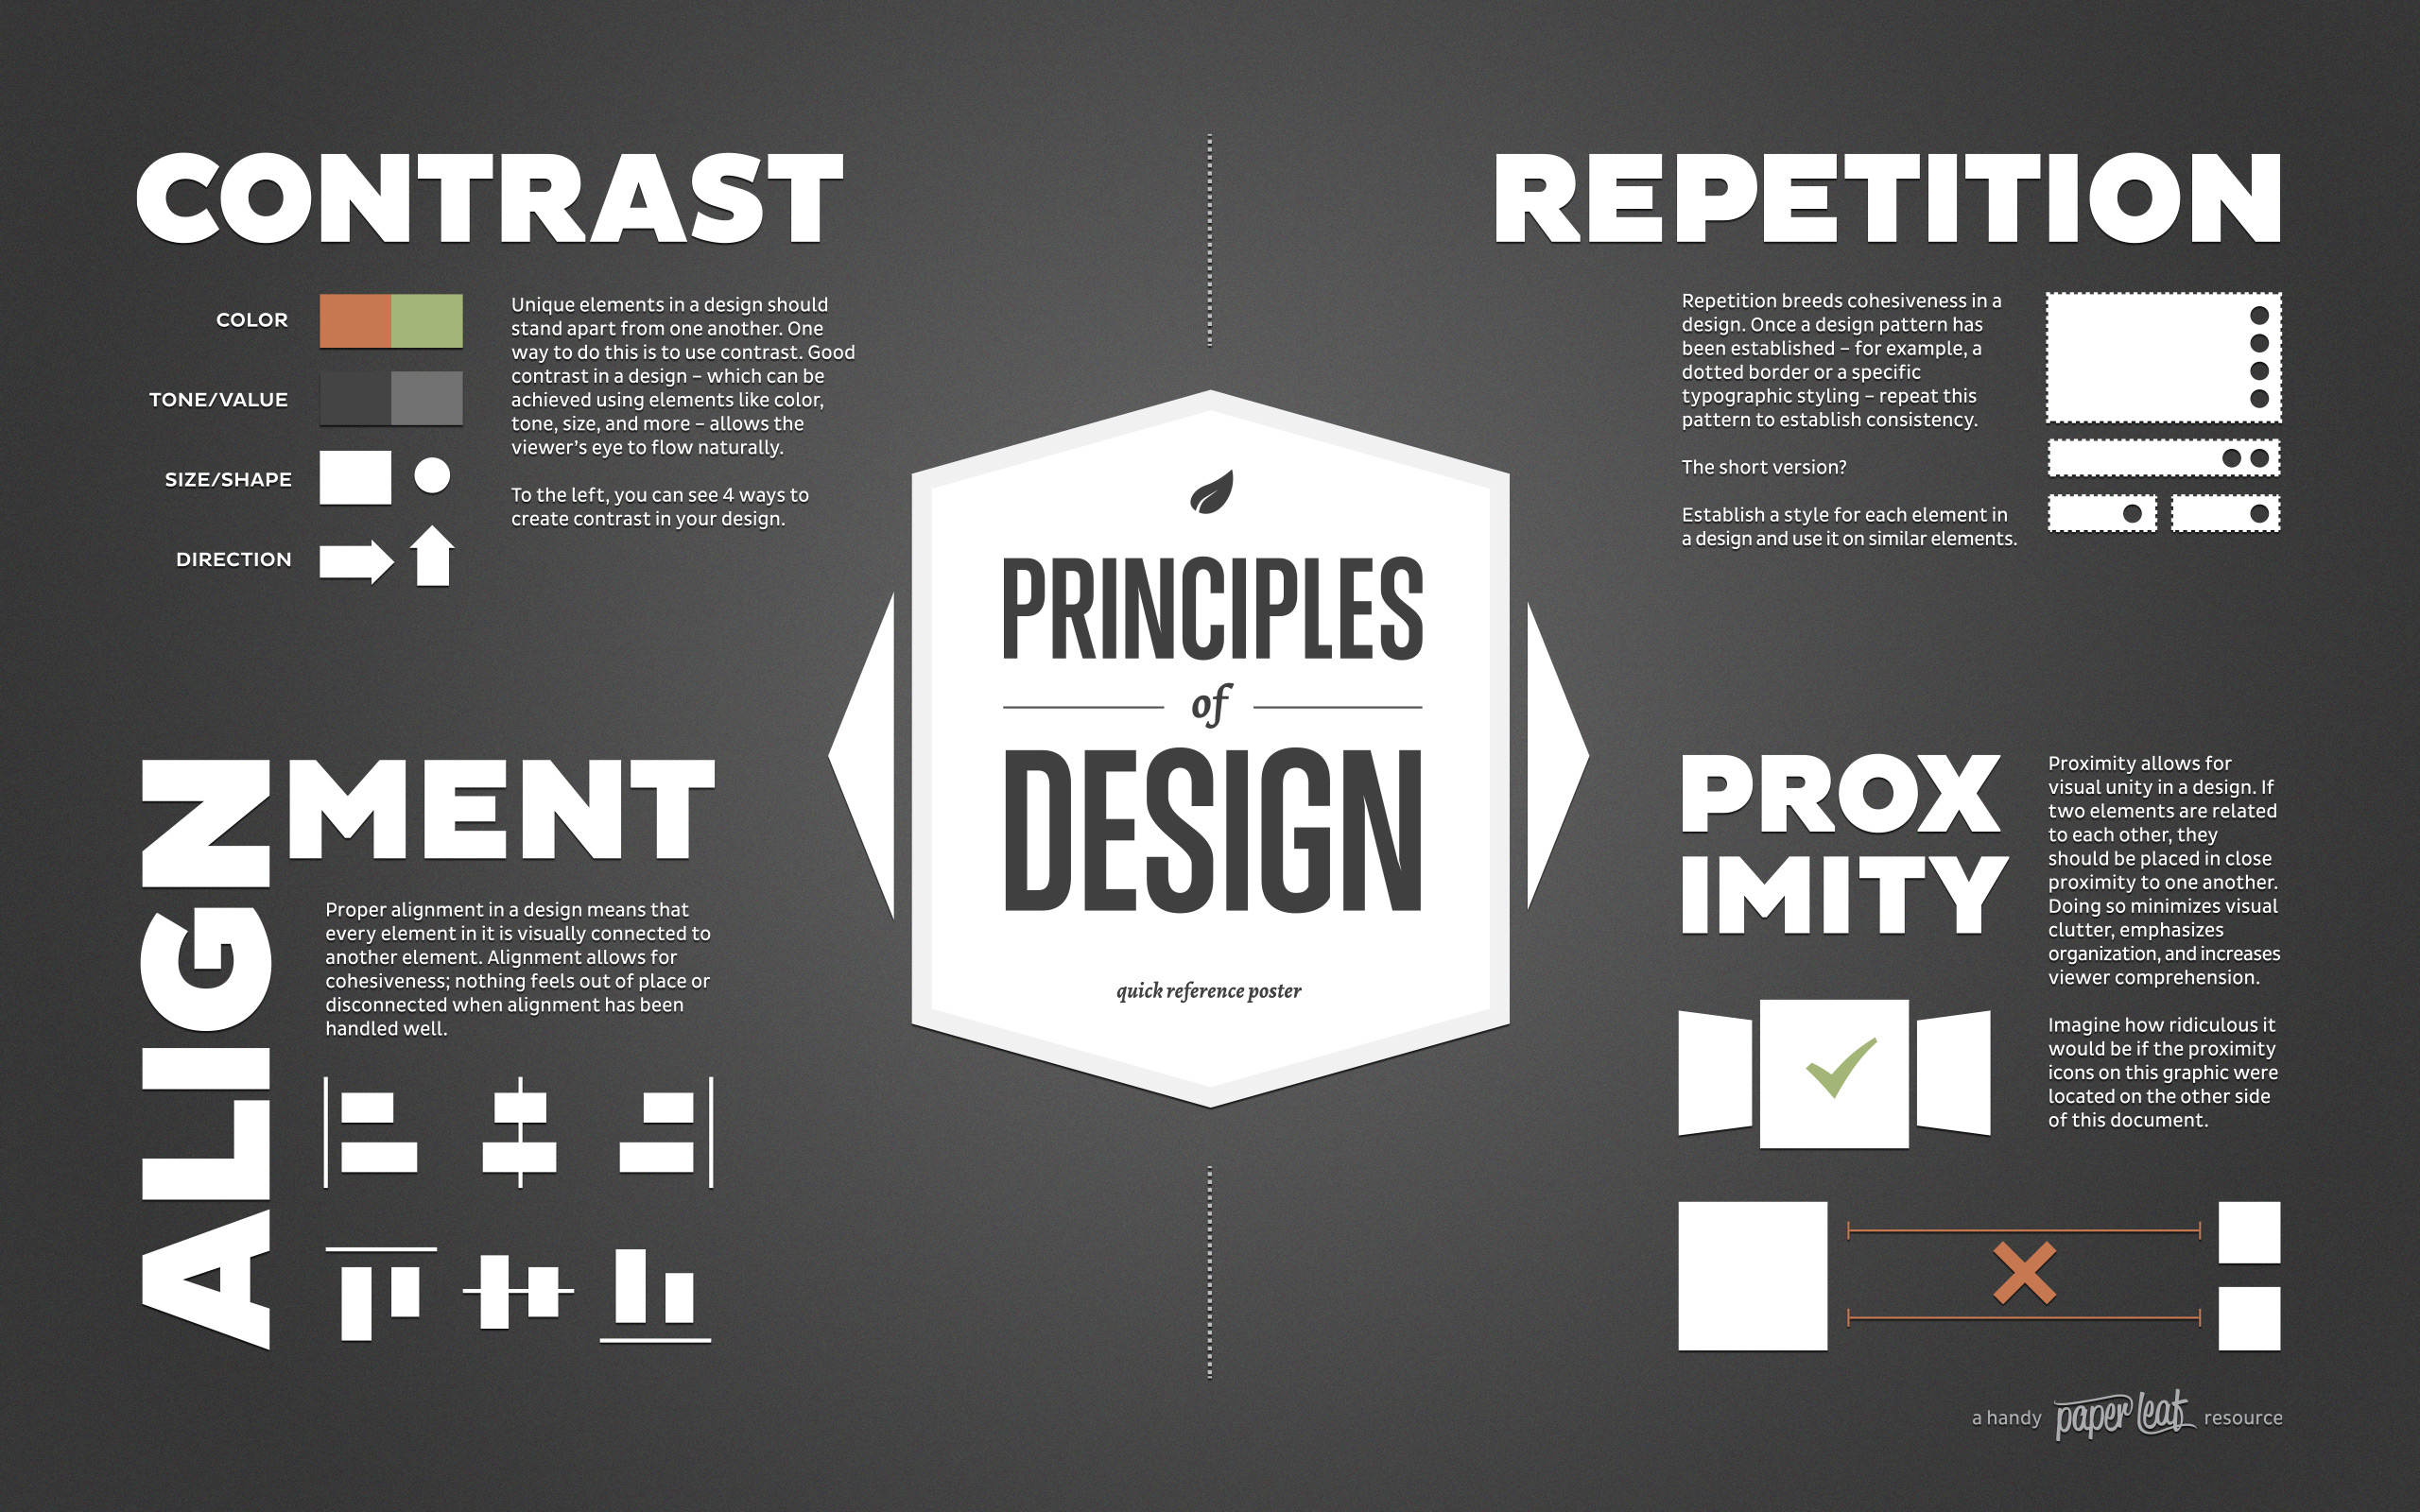 Principles Of Design : What makes good design basic elements and principles